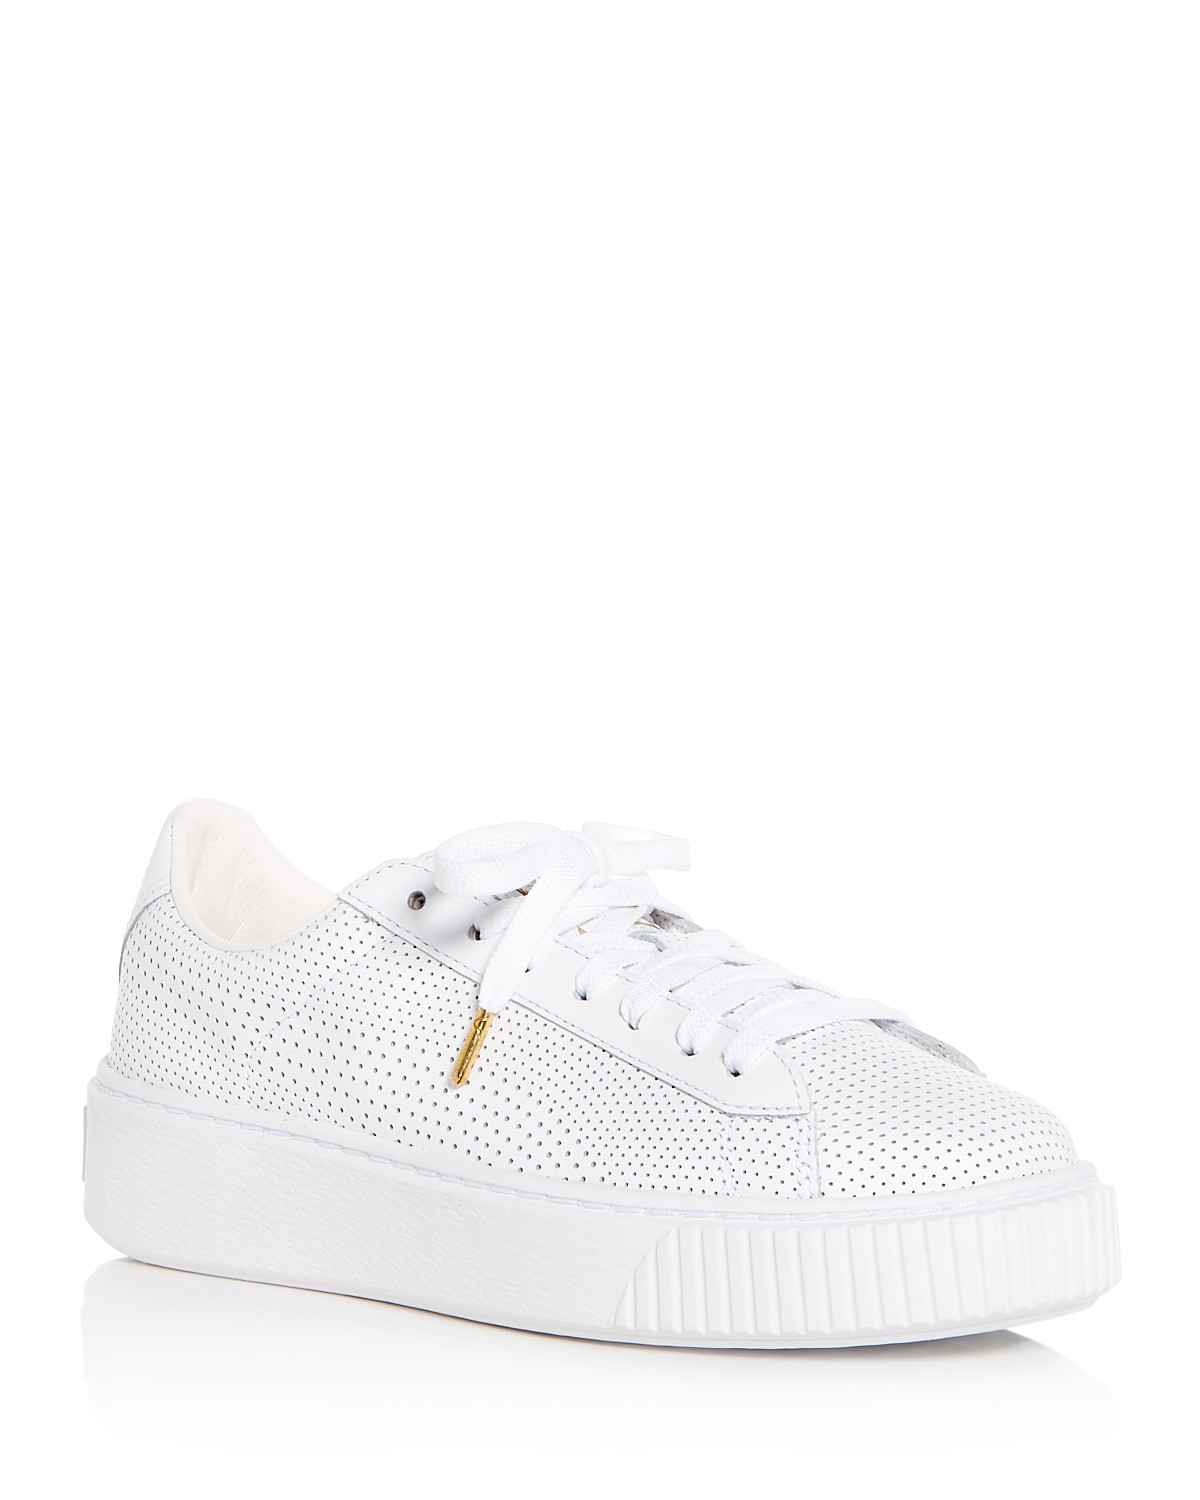 f0bf48b331b ... vast selection 10844 f6015 Puma Womens Basket Perforated Leather Lace  Up Platform Sneakers XlD10GtwVM ...